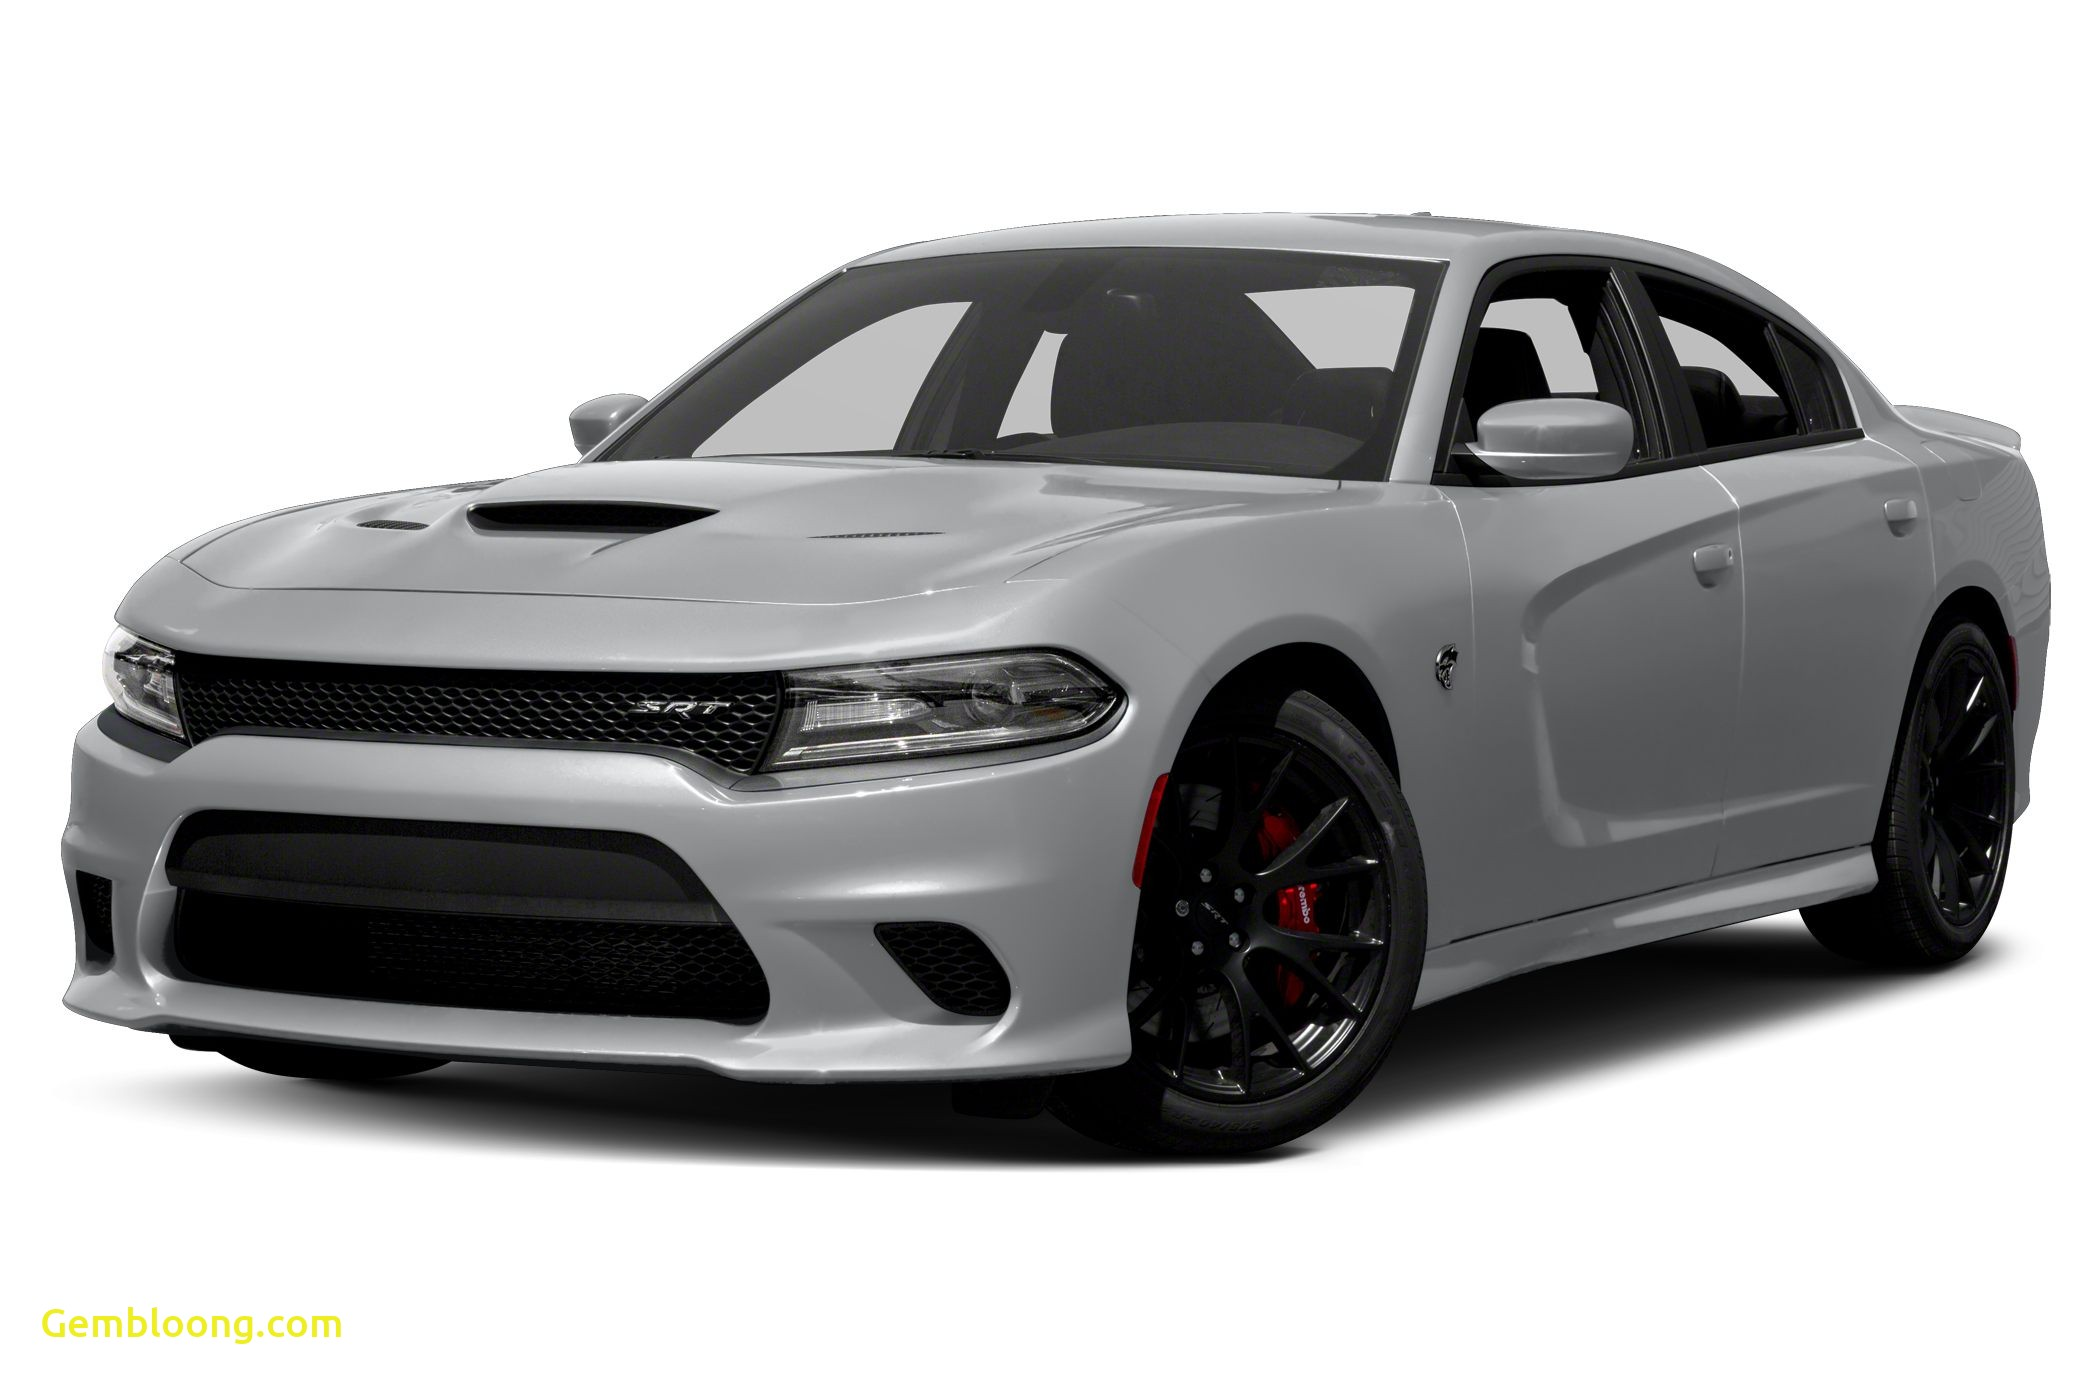 2018 Dodge Charger Gt Luxury 2018 Dodge Charger Srt Hellcat 4dr Rear Wheel Drive Sedan Specs and Prices